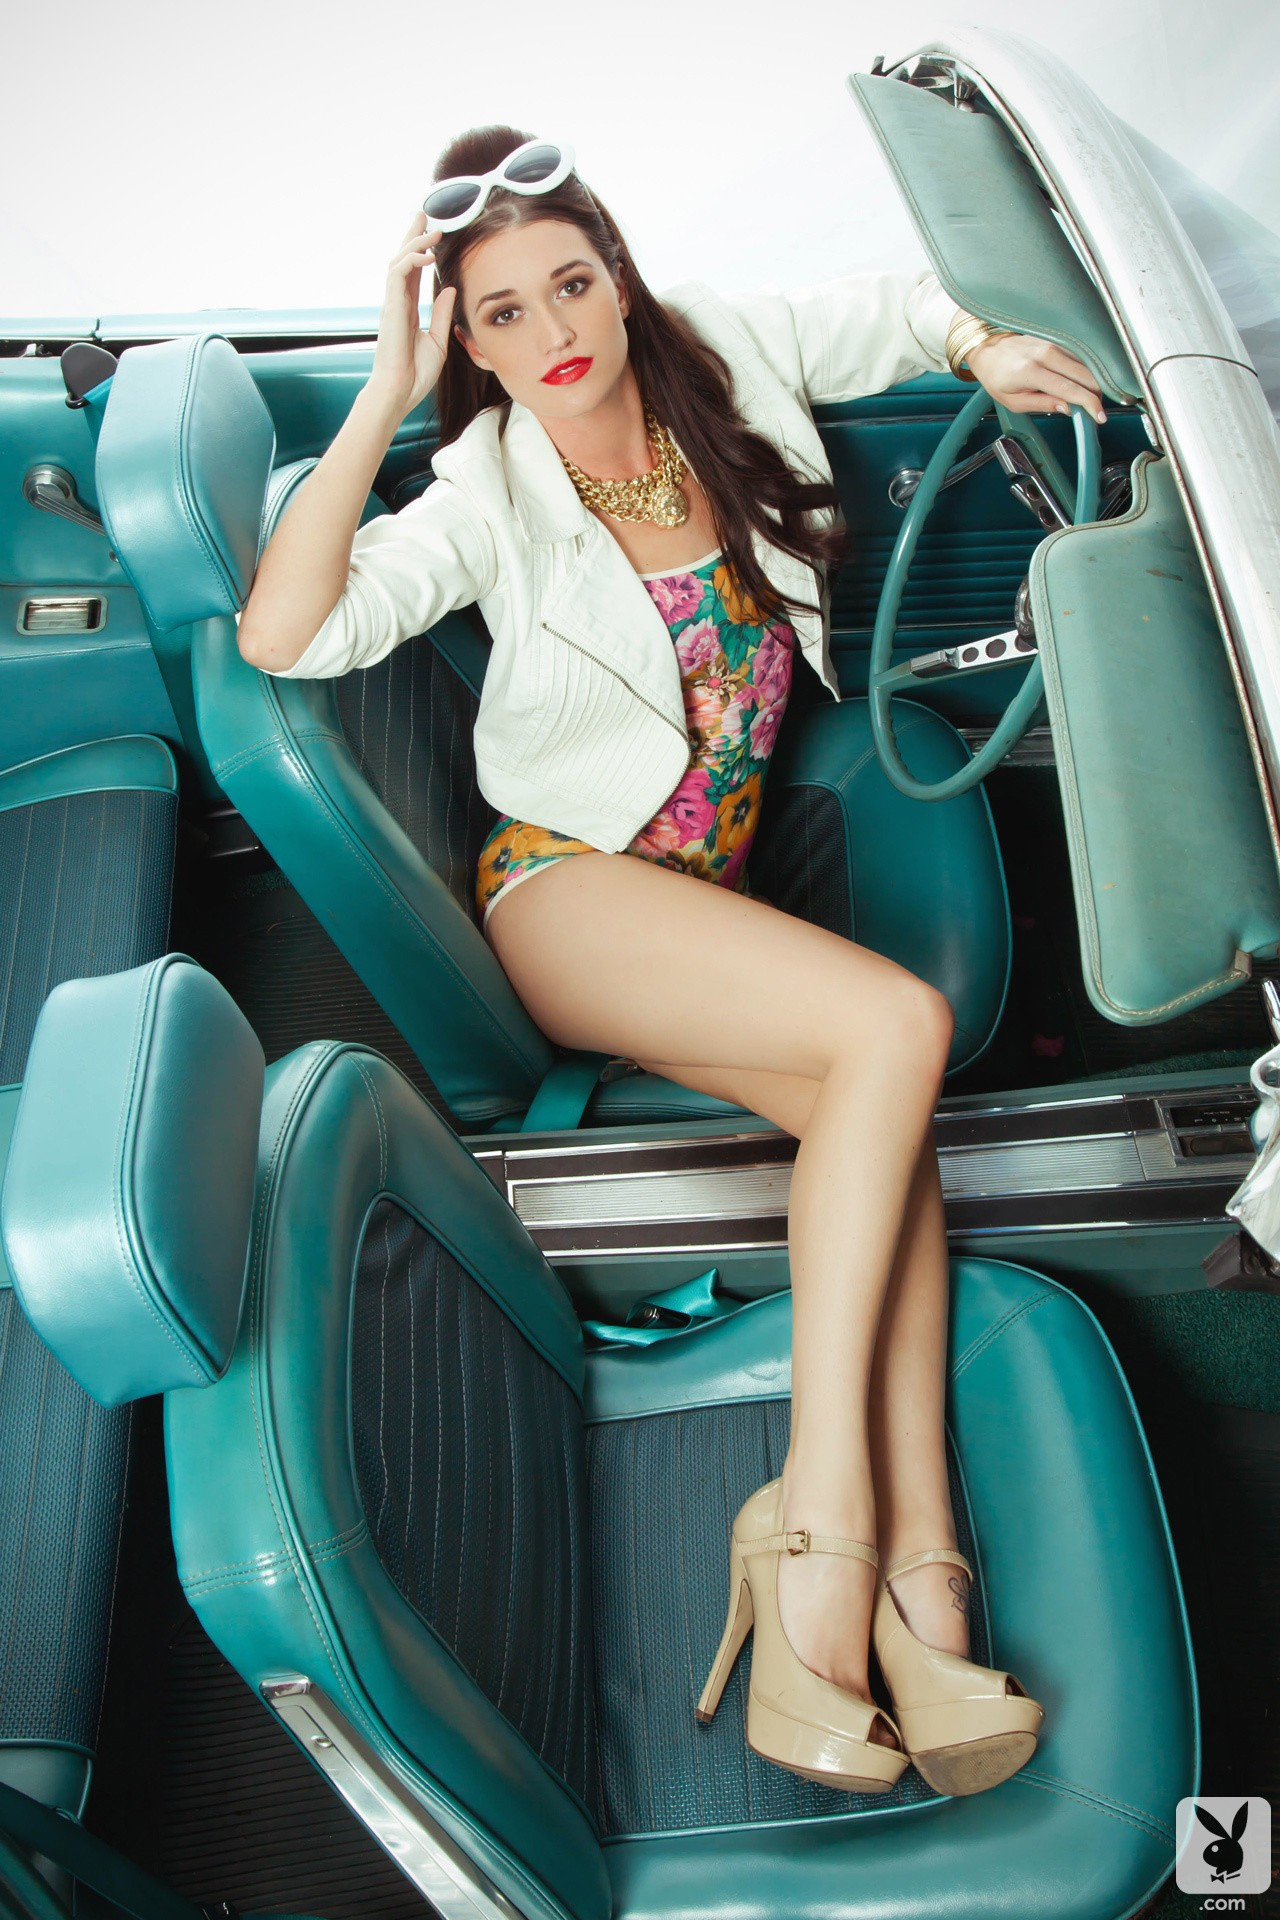 jade roper does retro playboy photo shoot in classic mustang convertible